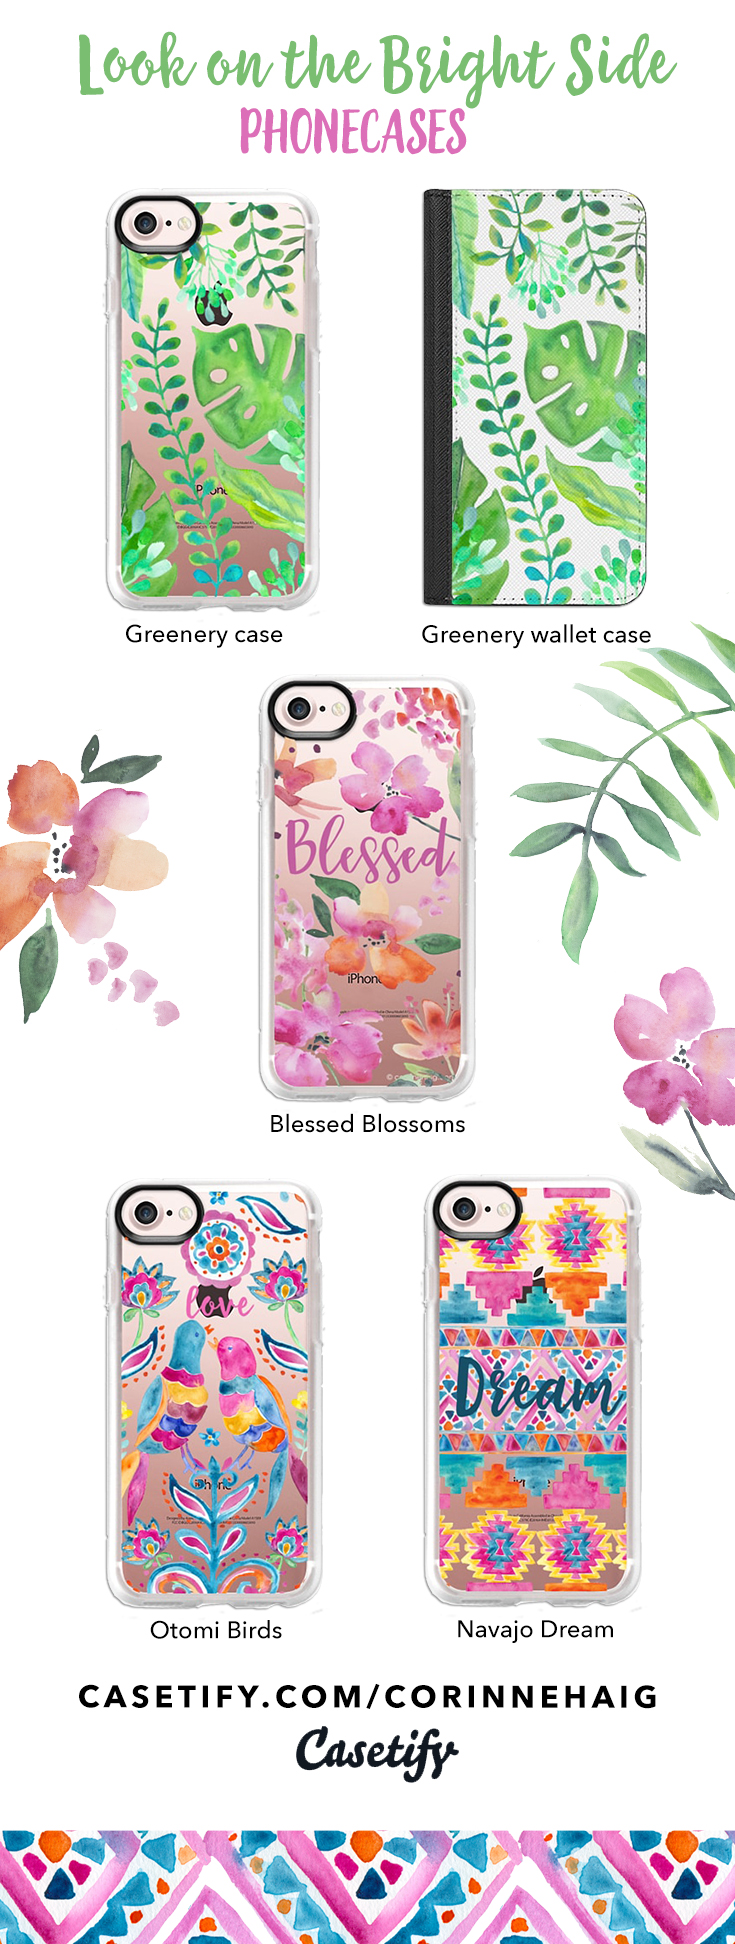 Phone cases by Corinne Haig